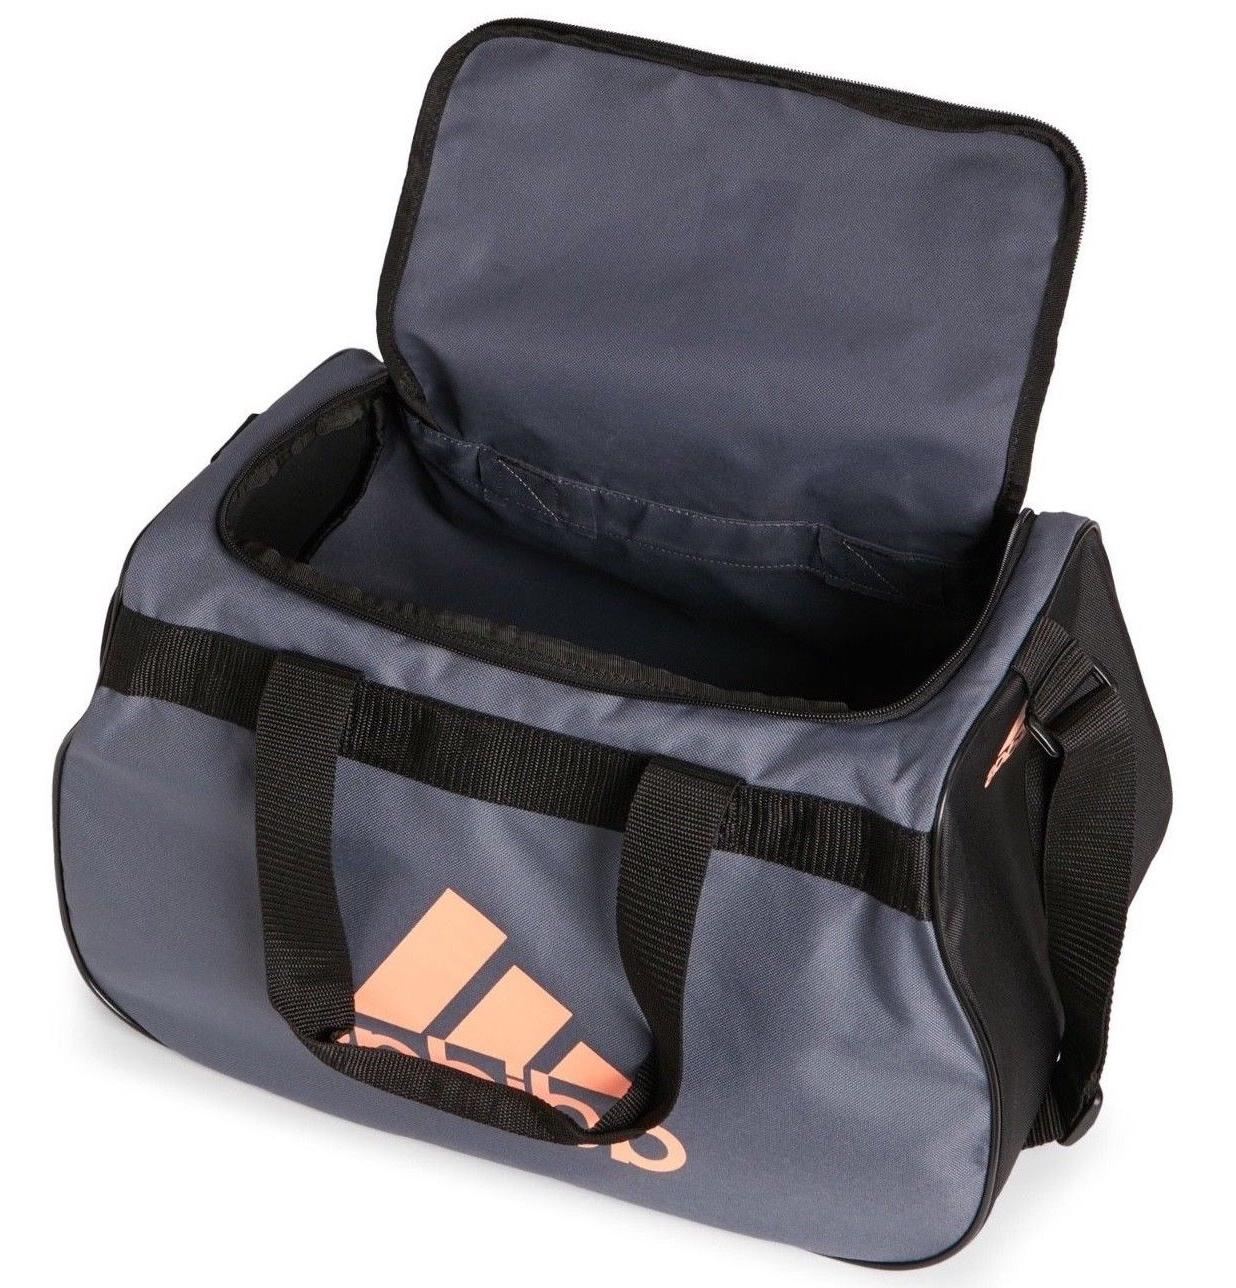 Adidas Diablo Duffel Bag BLACK ORANGE TOP Fits LIFETIME